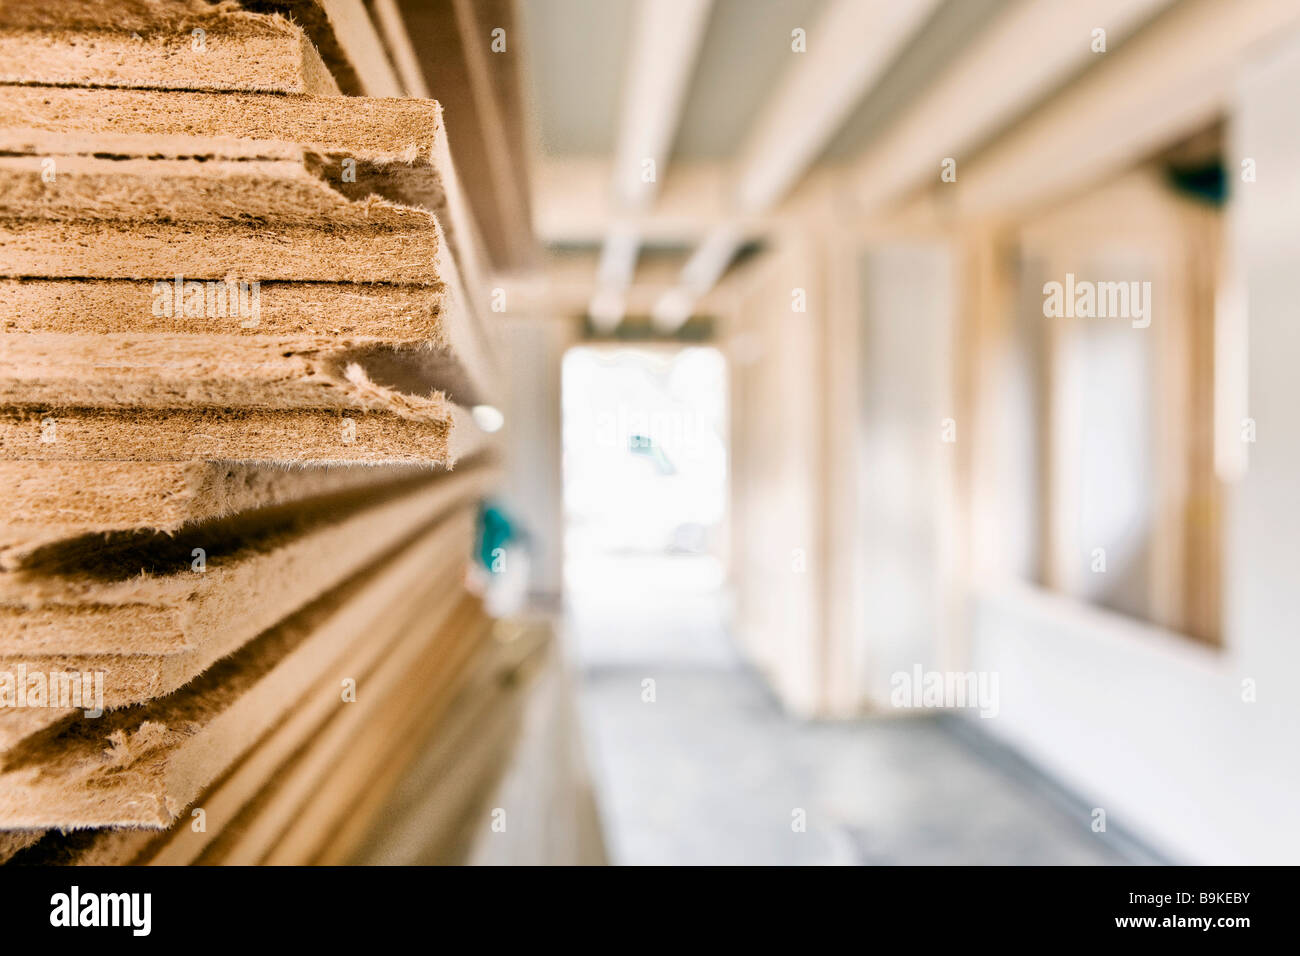 still life of wooden planks on construction site - Stock Image